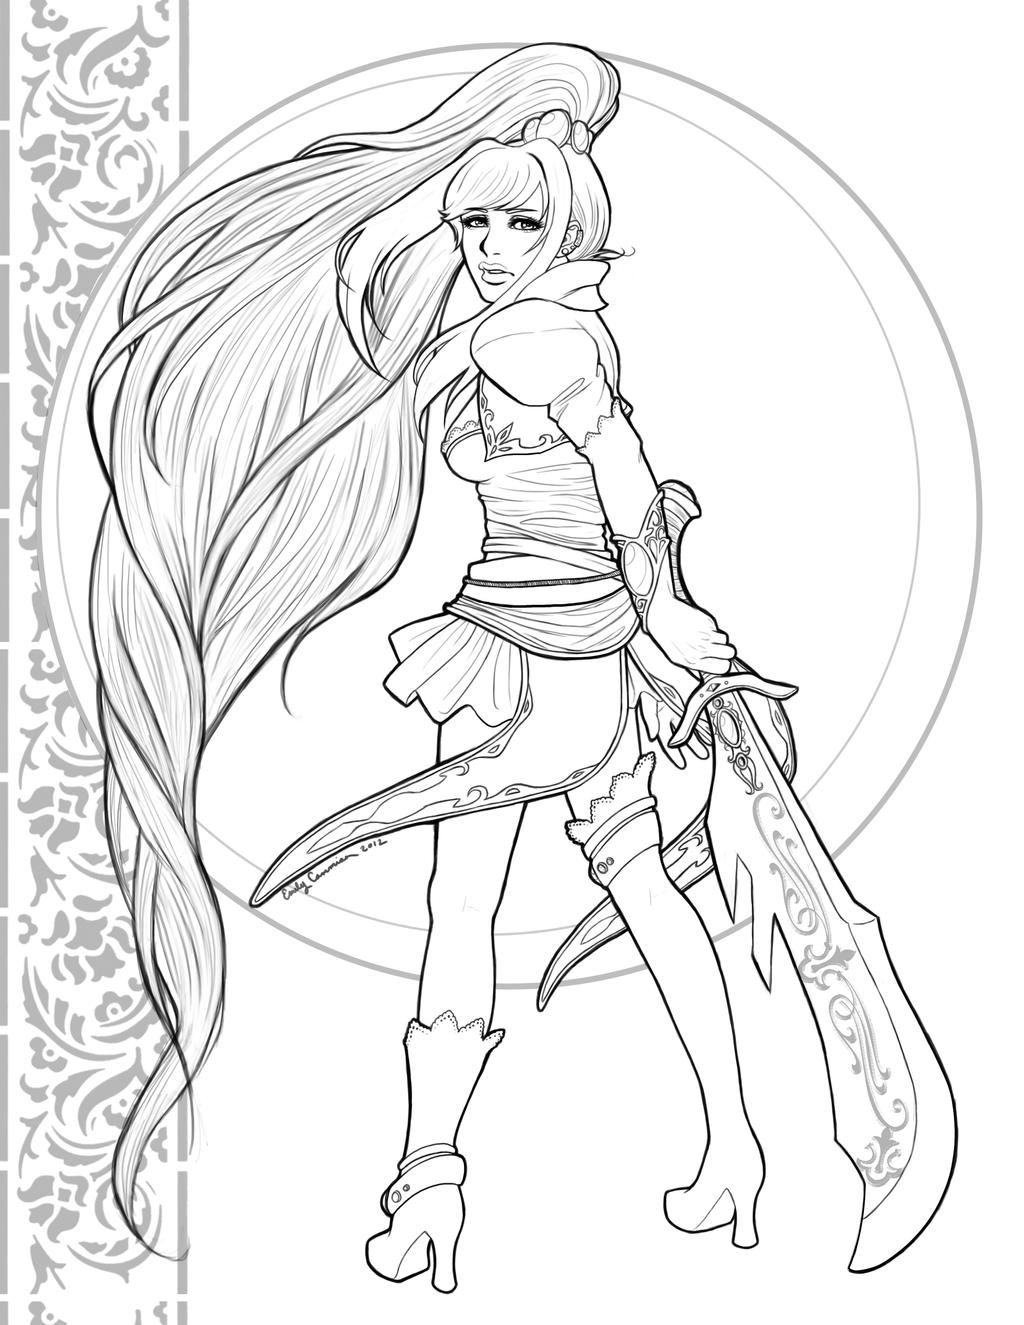 Line Art Character : Guild wars character design lineart by otakuec on deviantart